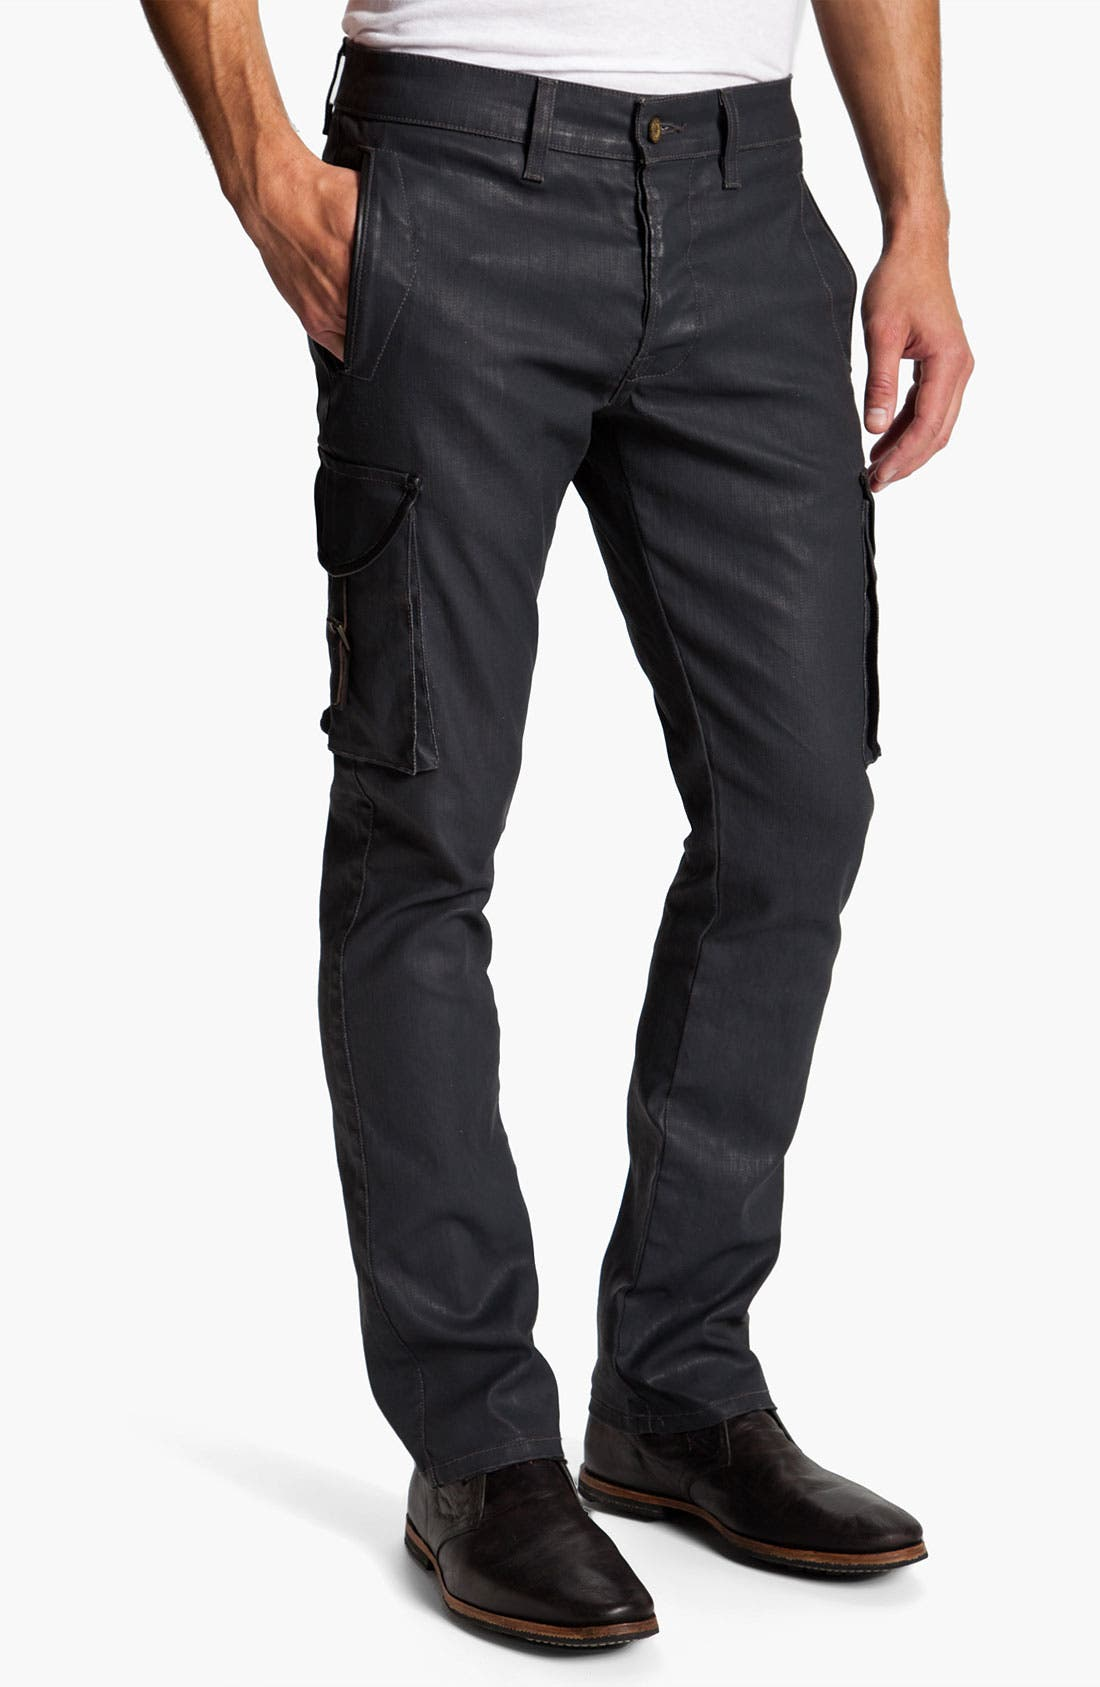 Alternate Image 1 Selected - Madisonpark Collective Coated Slim Straight Leg Cargo Pants